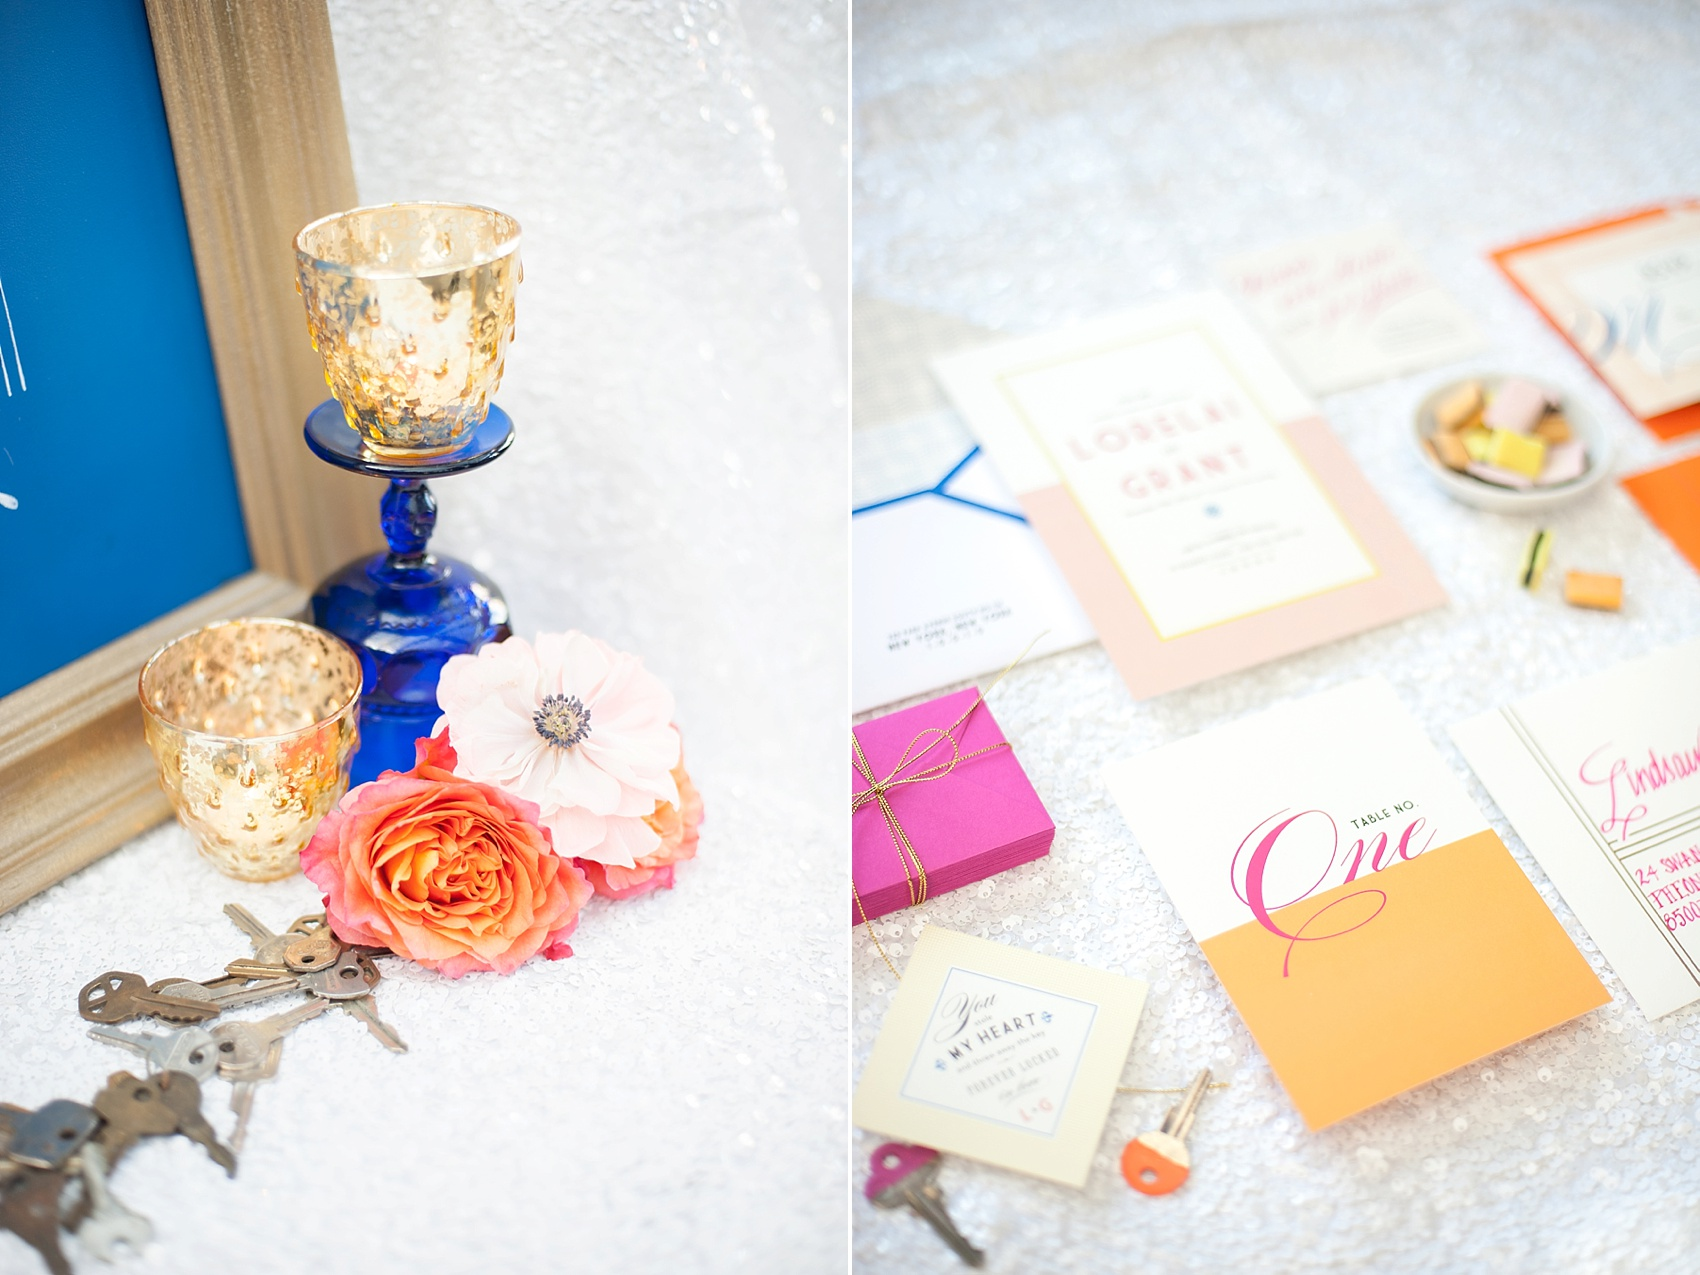 Forever Linked, Ponts des Arts, Lock and Key Wedding Ideas ...